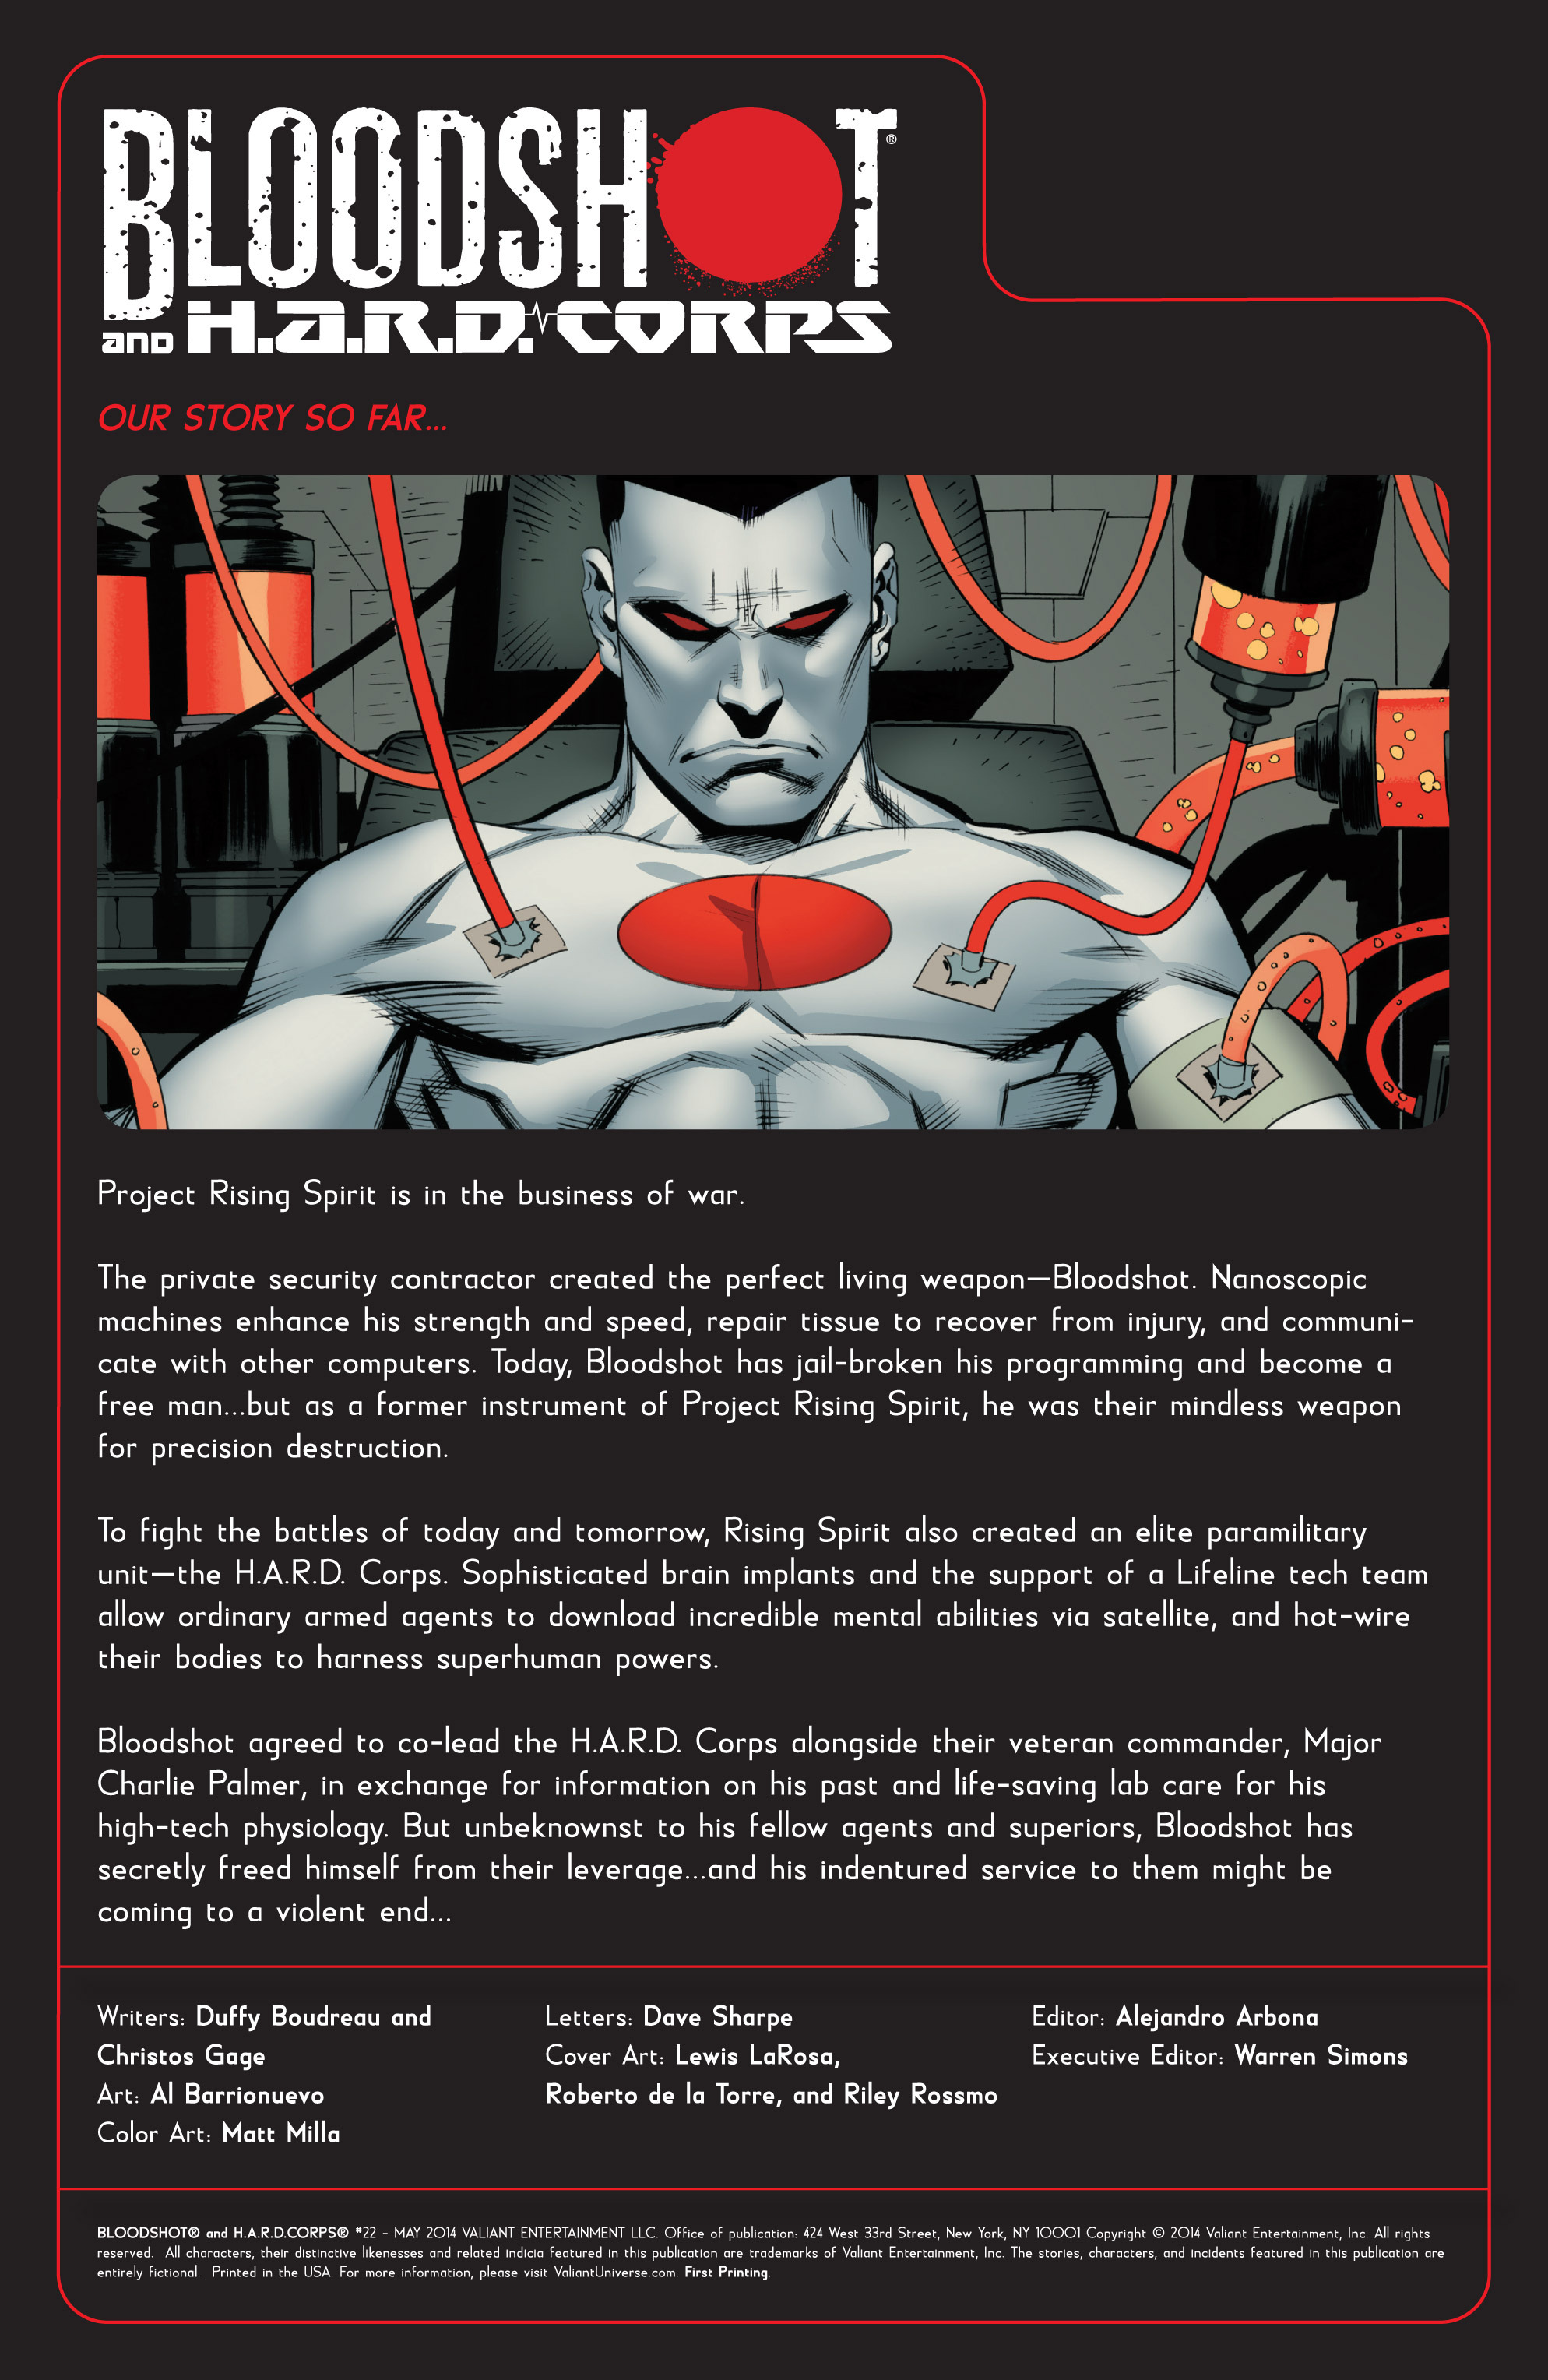 Read online Bloodshot and H.A.R.D.Corps comic -  Issue #22 - 2